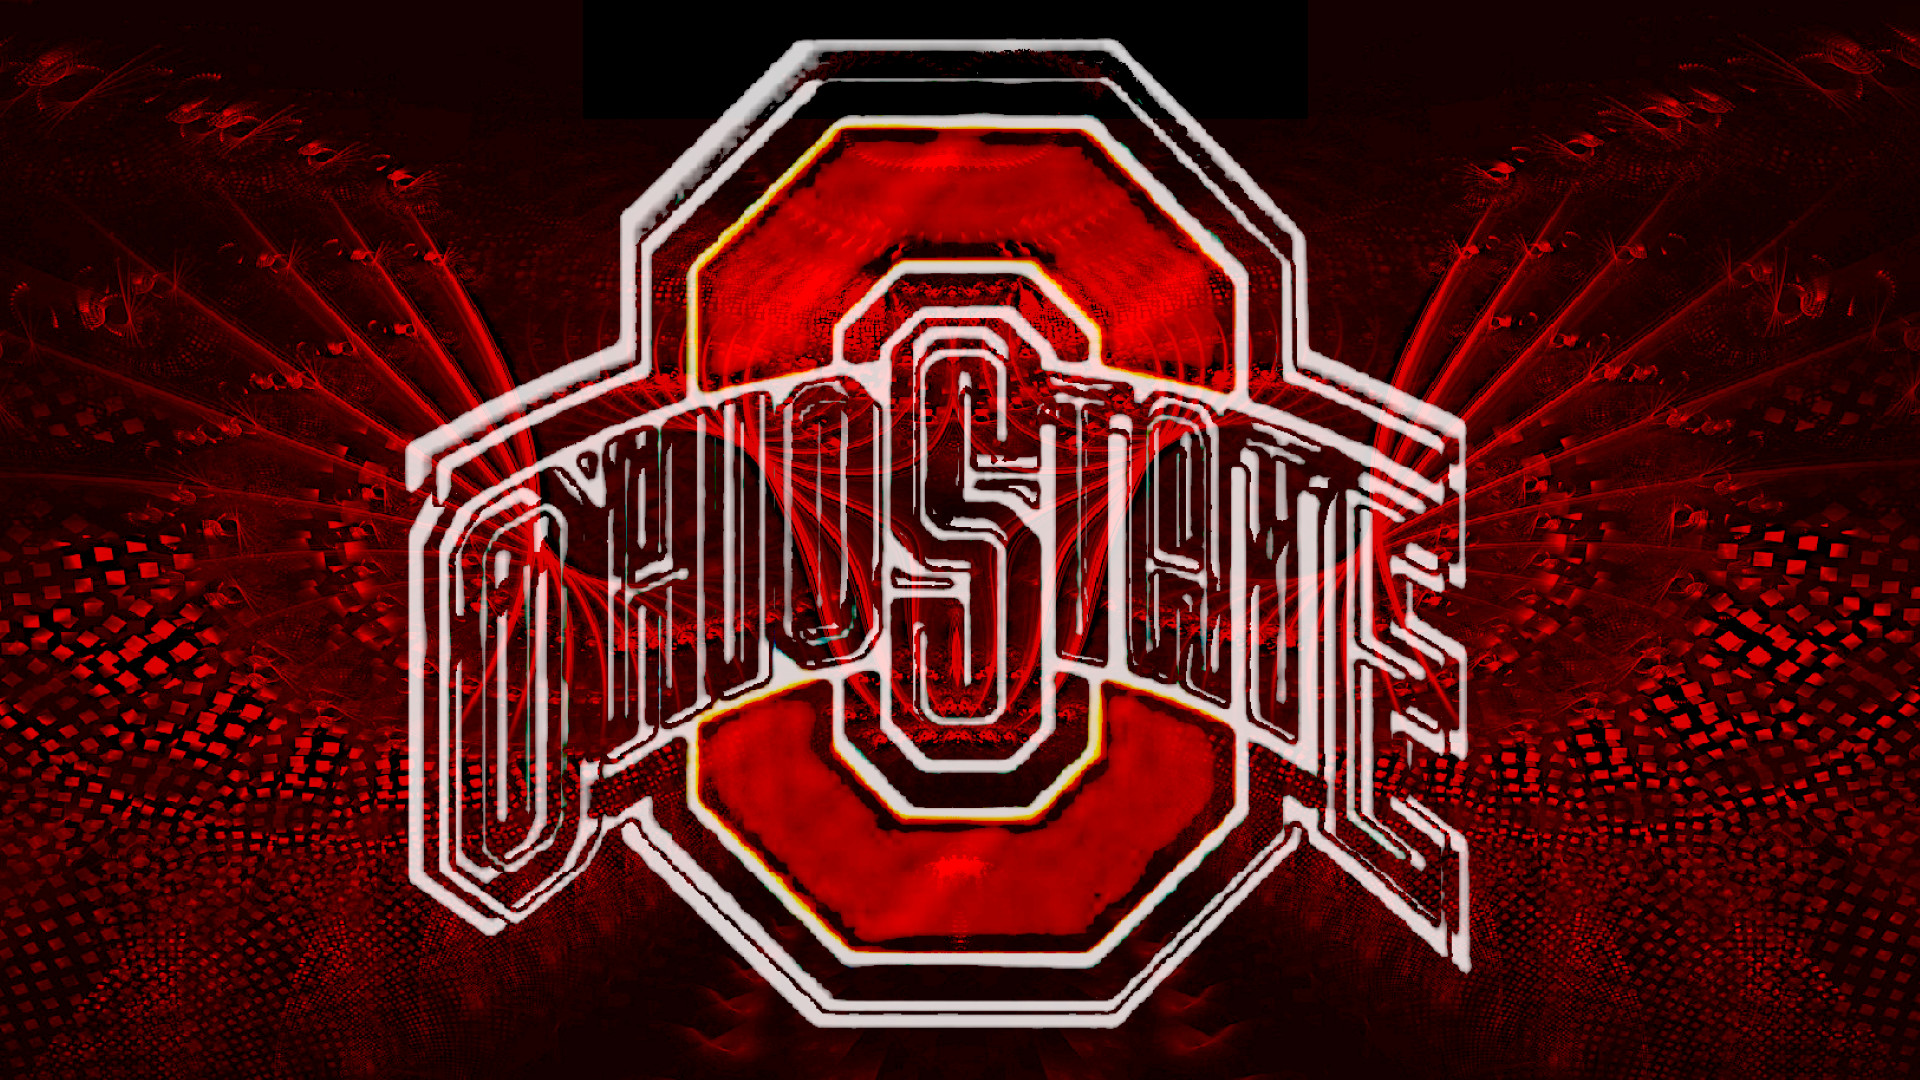 Celebrate The Game With Ohio State Michigan Wallpapers and   HD Wallpapers    Pinterest   Hd wallpaper and Wallpaper